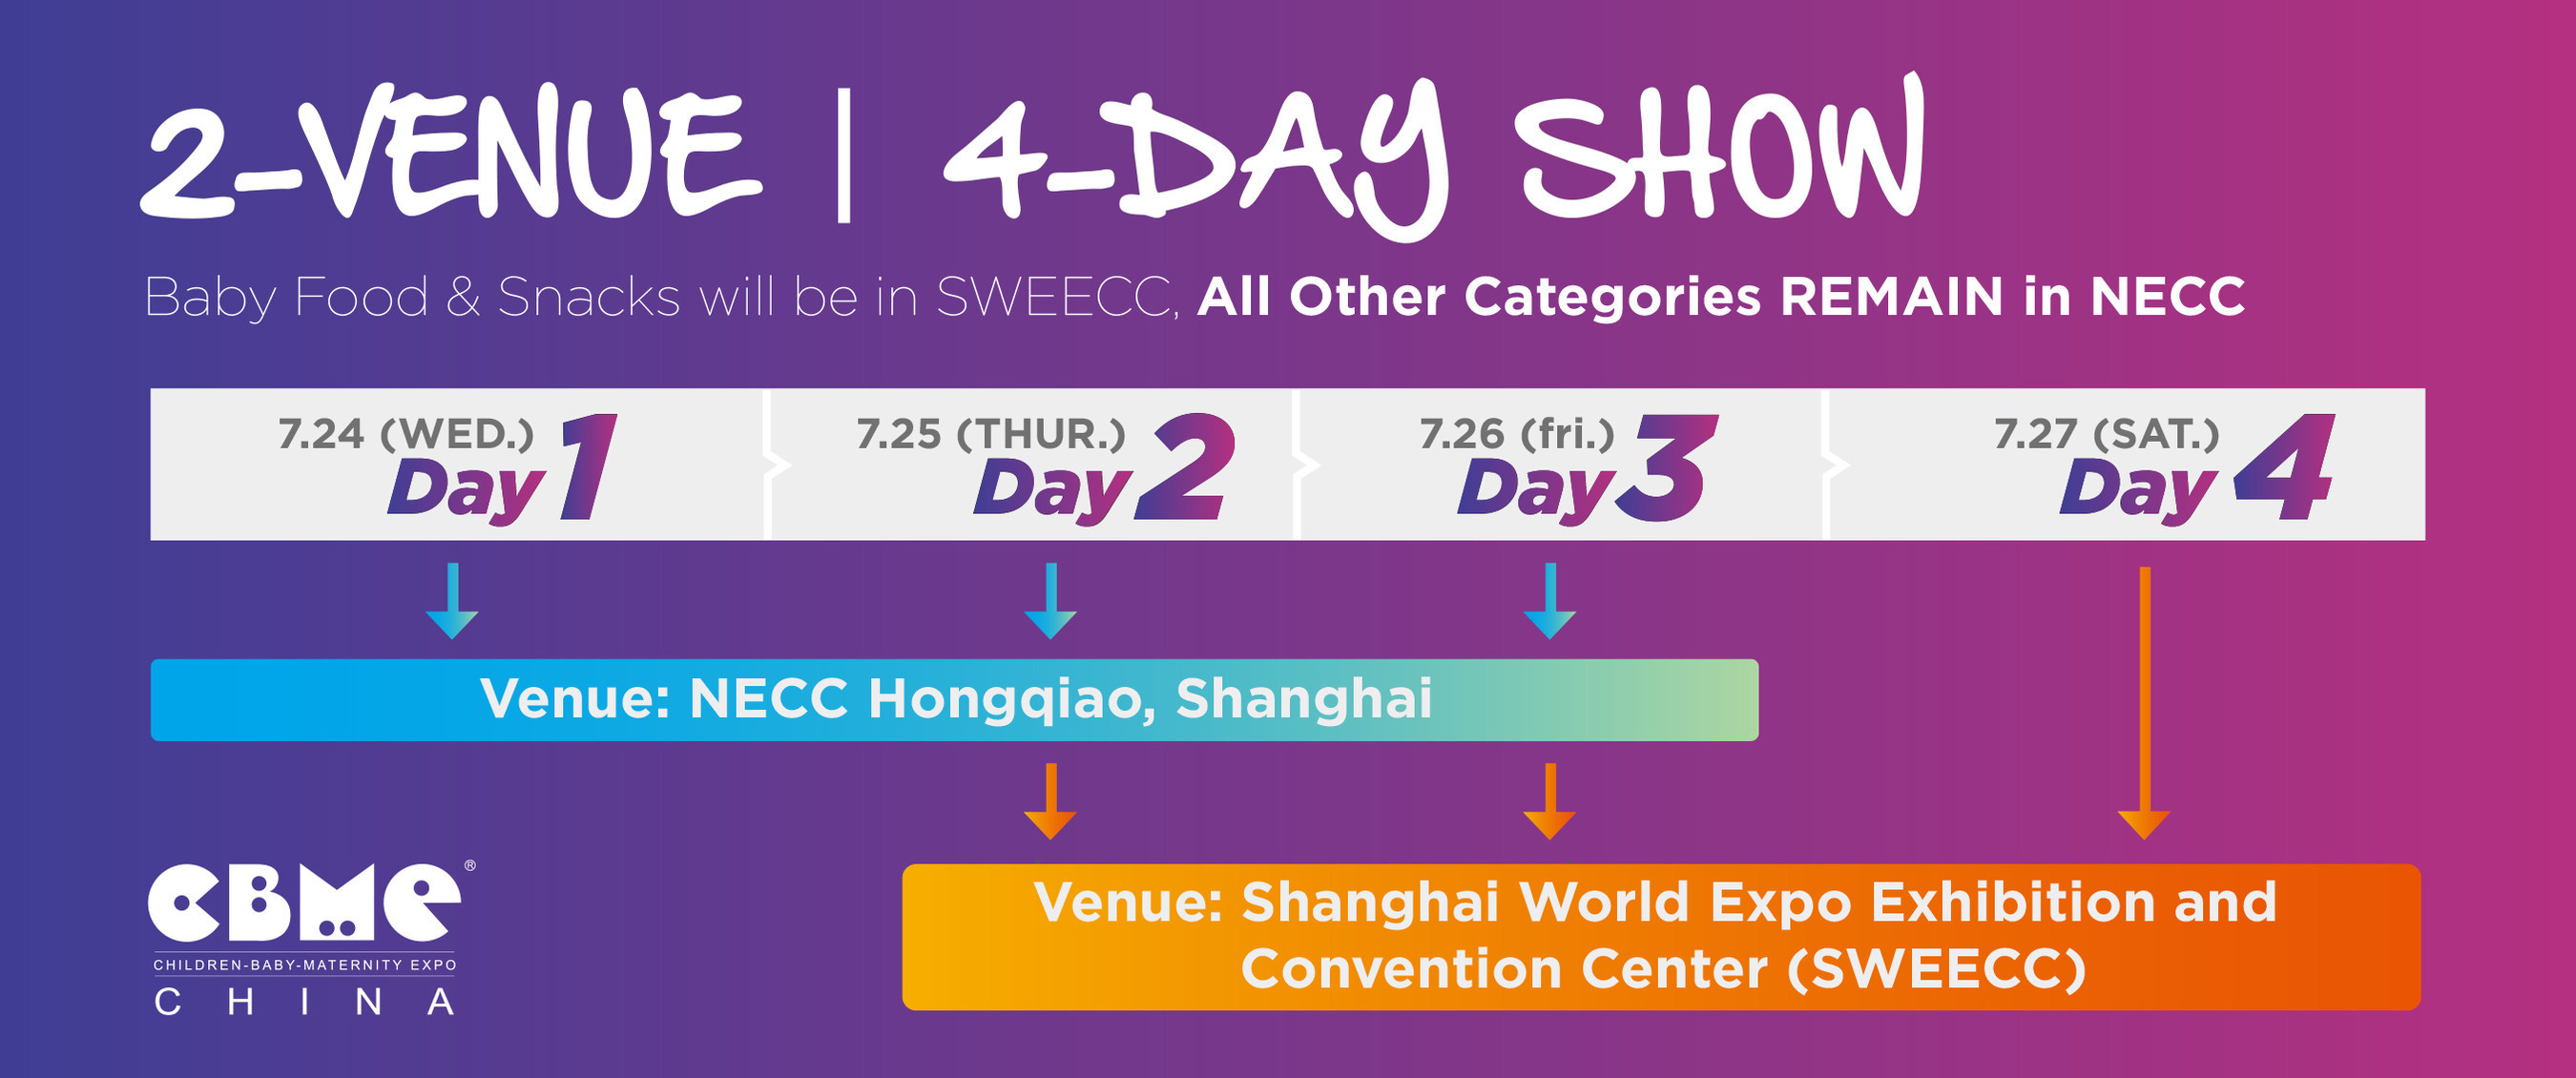 The World S Largest Children Baby And Maternity Expo Is Coming Soon Driving The Creative New Future Of Cbme China 2019